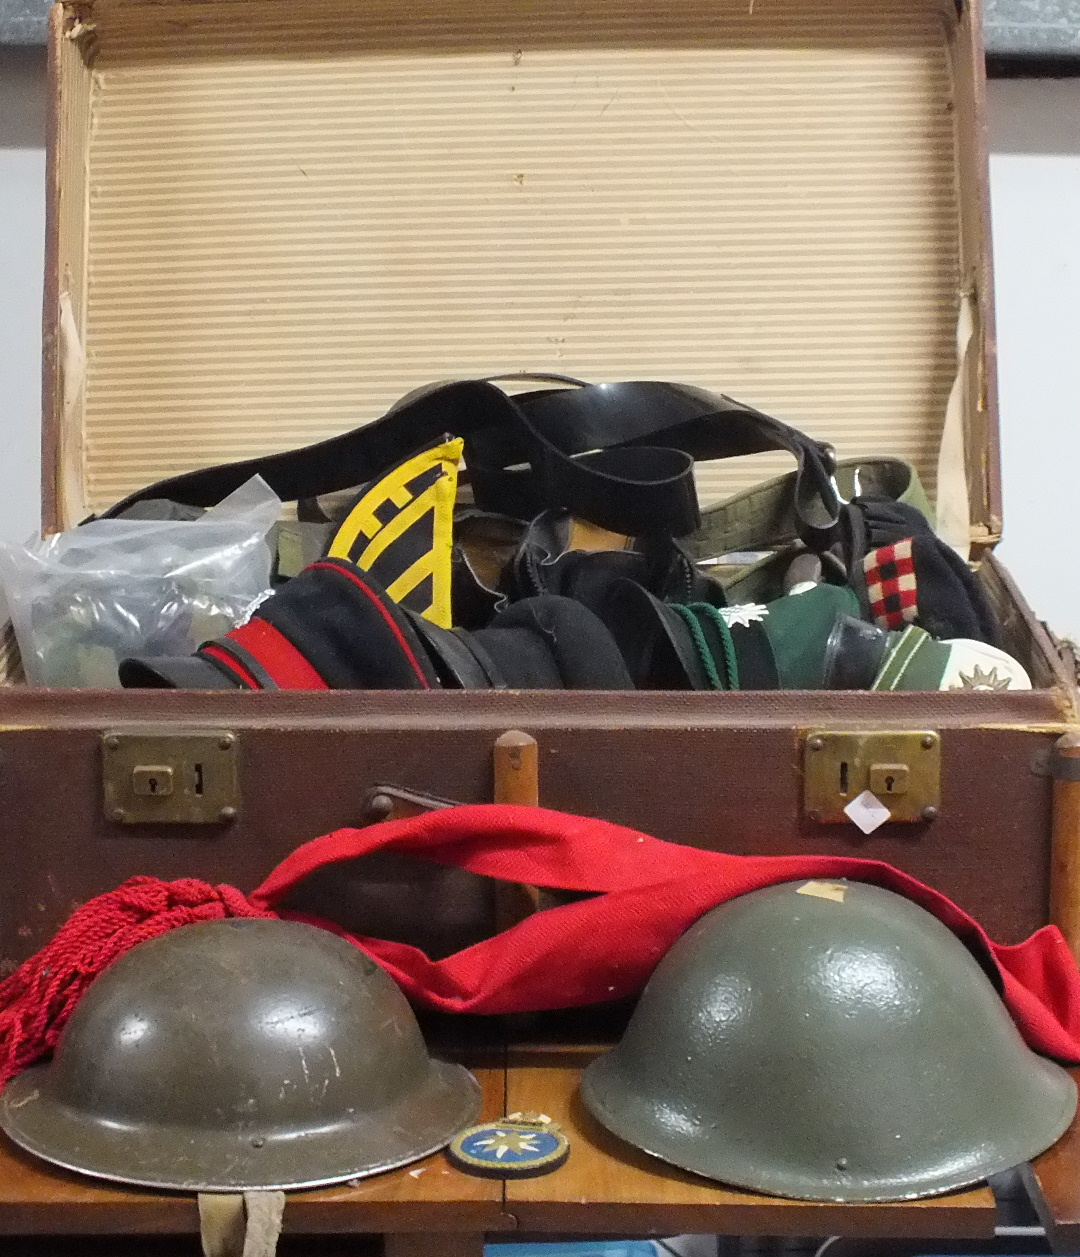 Lot 263 - A quantity of mainly British Army items including a 1939 helmet, two pairs of boots, two gas